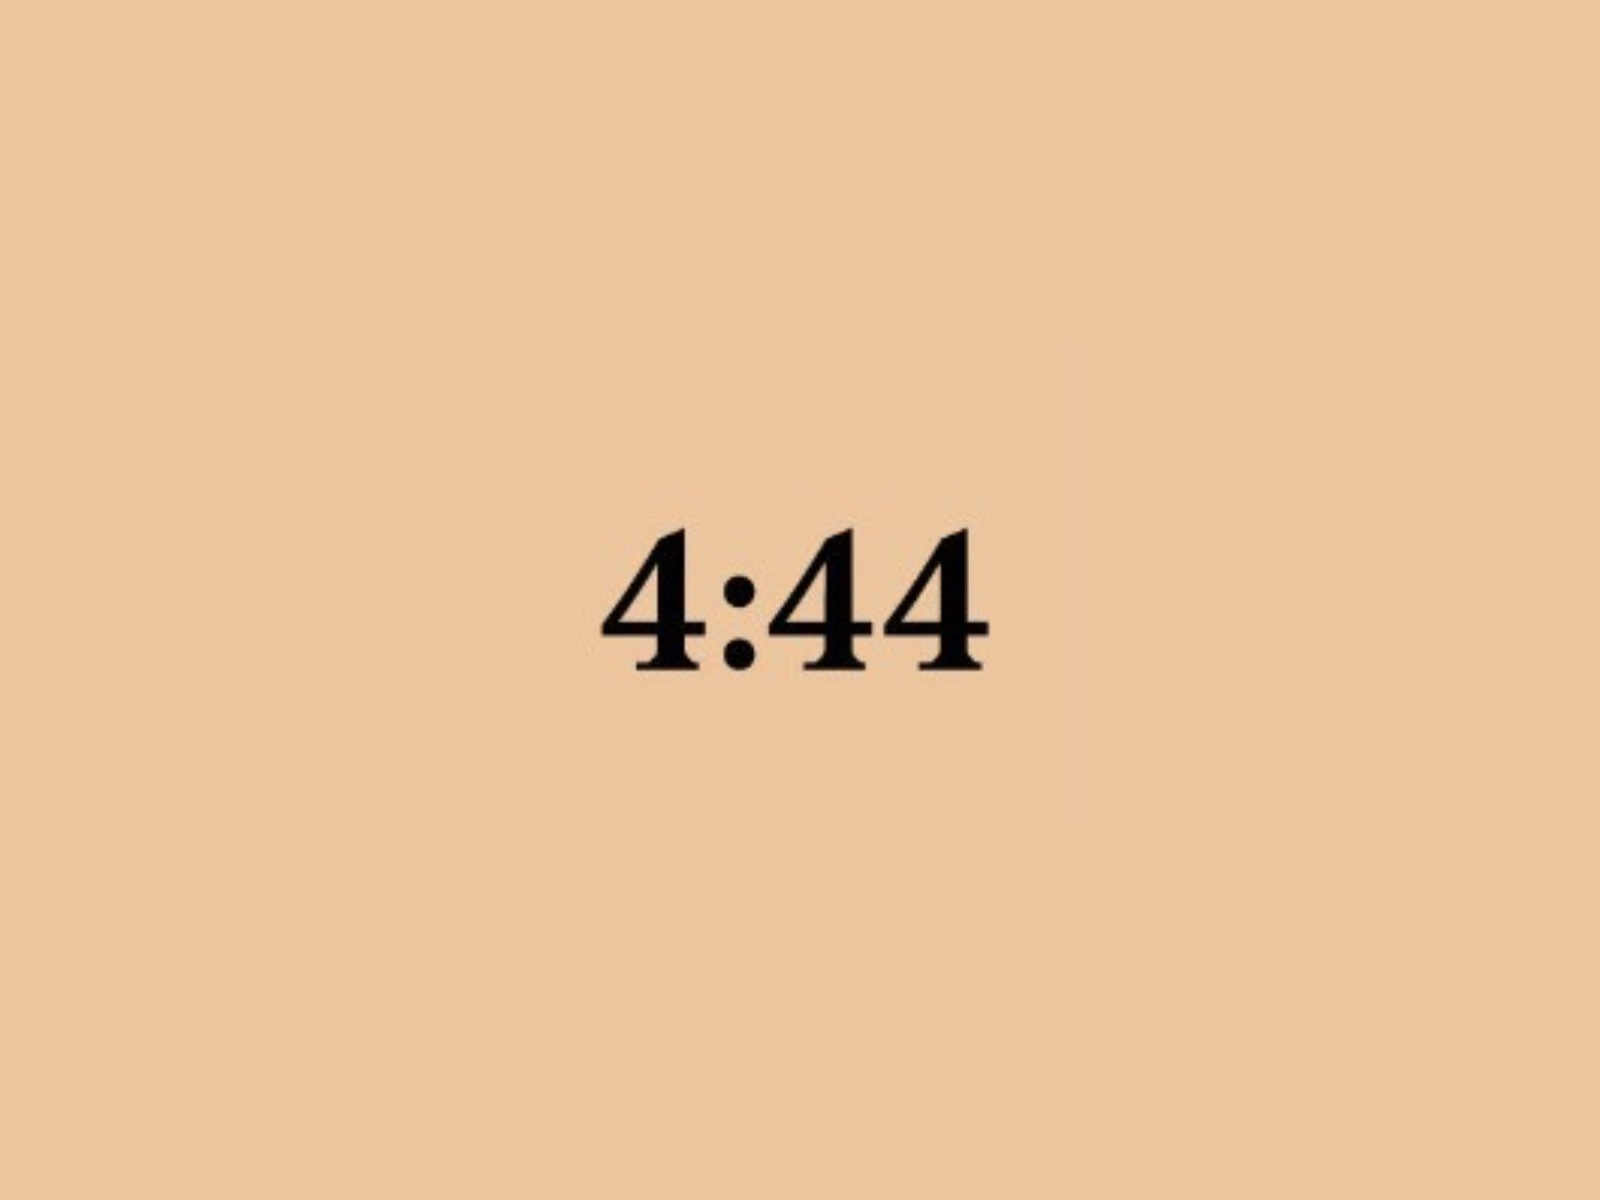 Jay z 444 album review the malvernweather Images